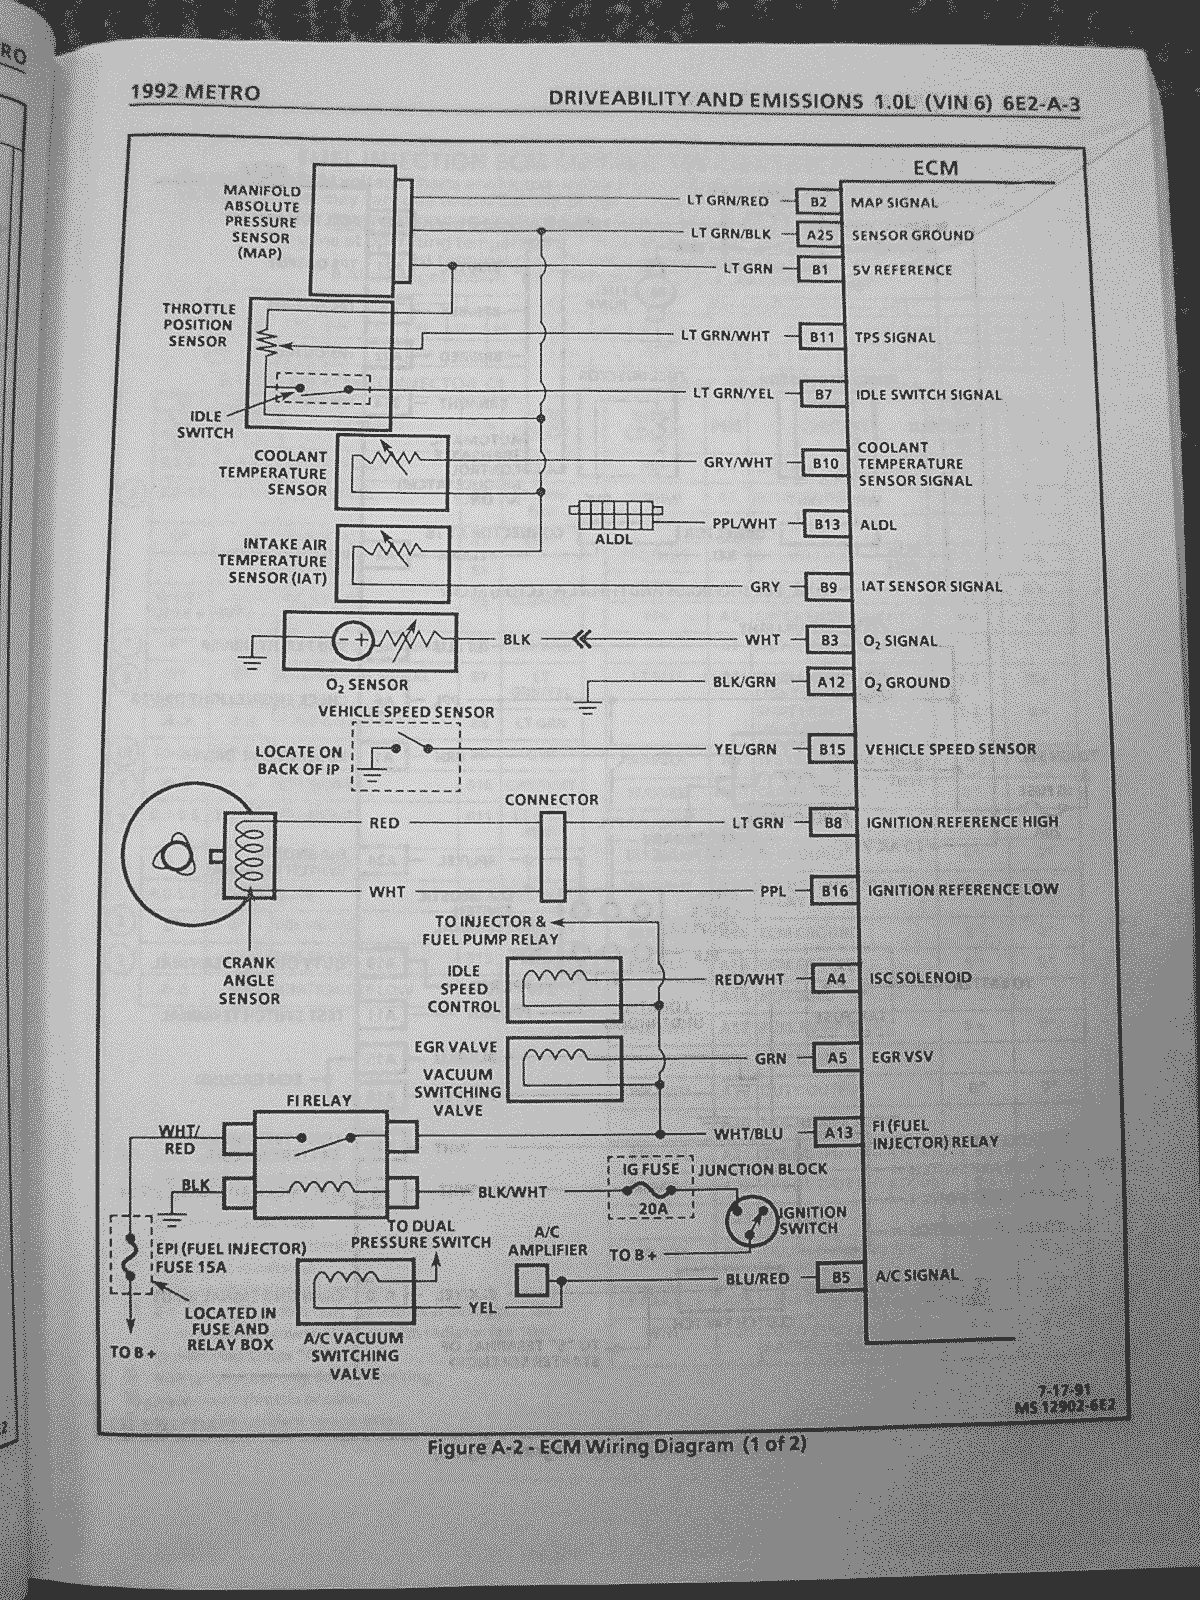 Ford Windstar Fuse Diagram On 95 Ford Windstar Radio Wiring Harness